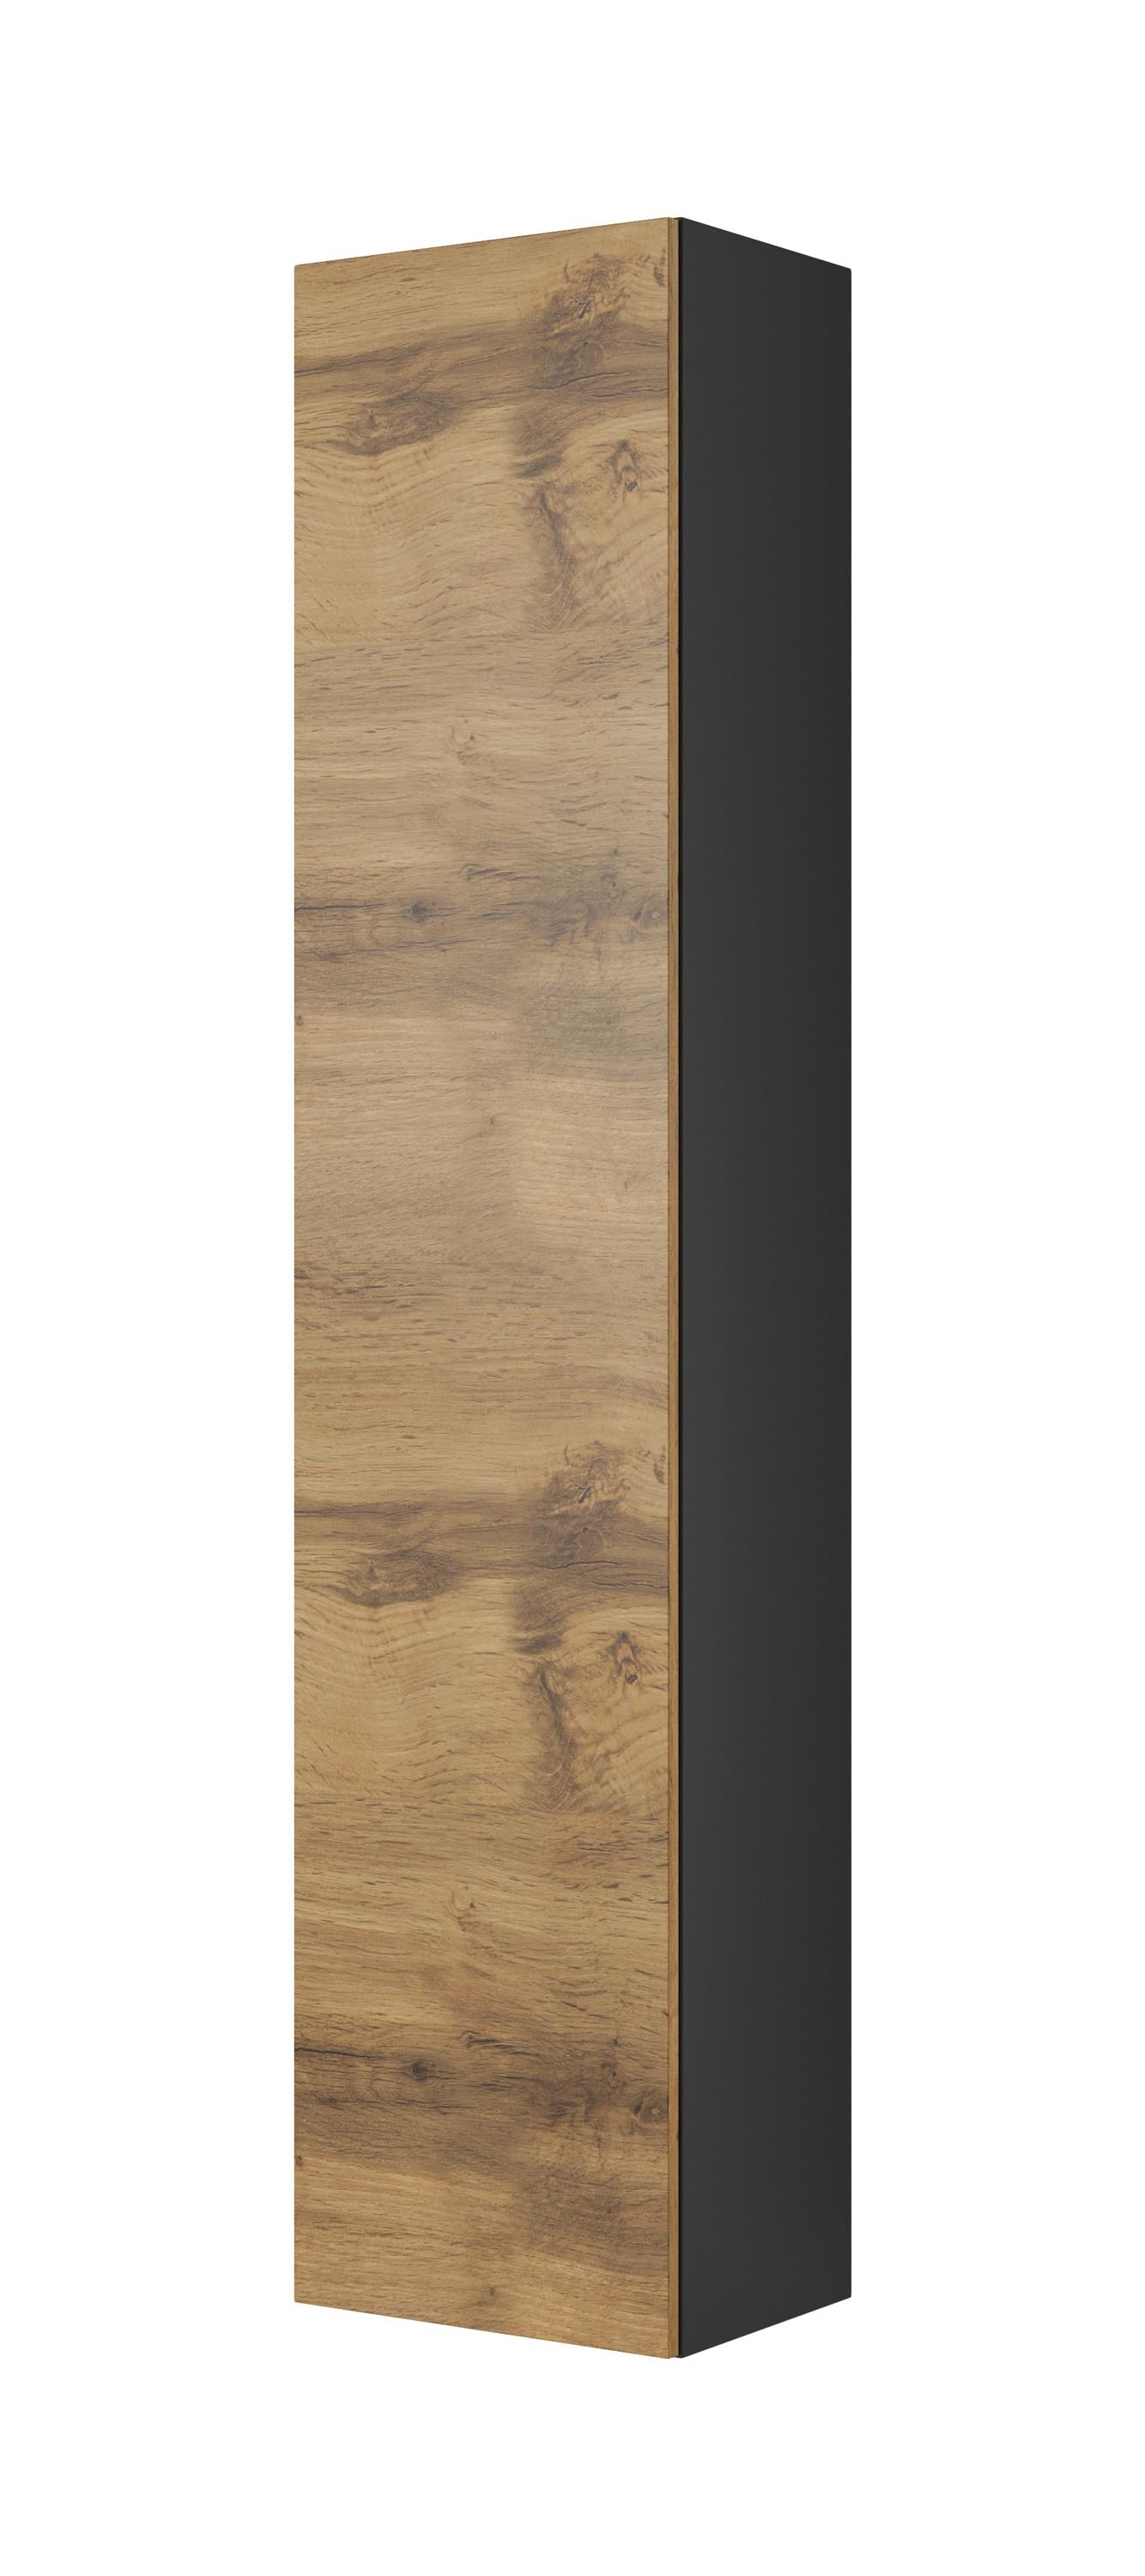 Cabinet suspendat din pal si MDF, cu 1 usa Livo S-180 Wotan Oak / Anthracite, l40xA30xH180 cm somproduct.ro